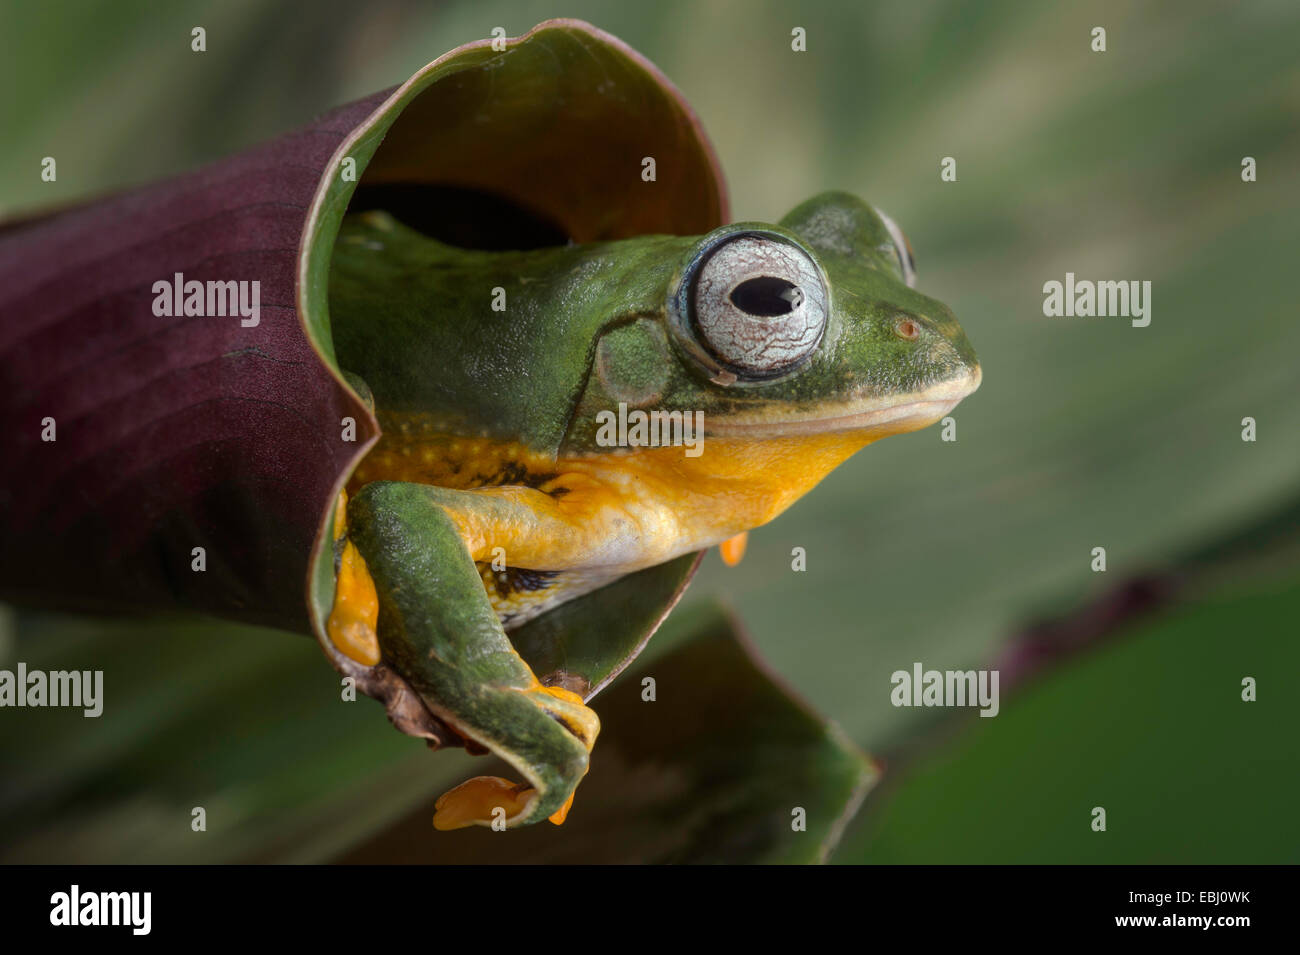 Flying Tree Frog peering out of a leaf. - Stock Image